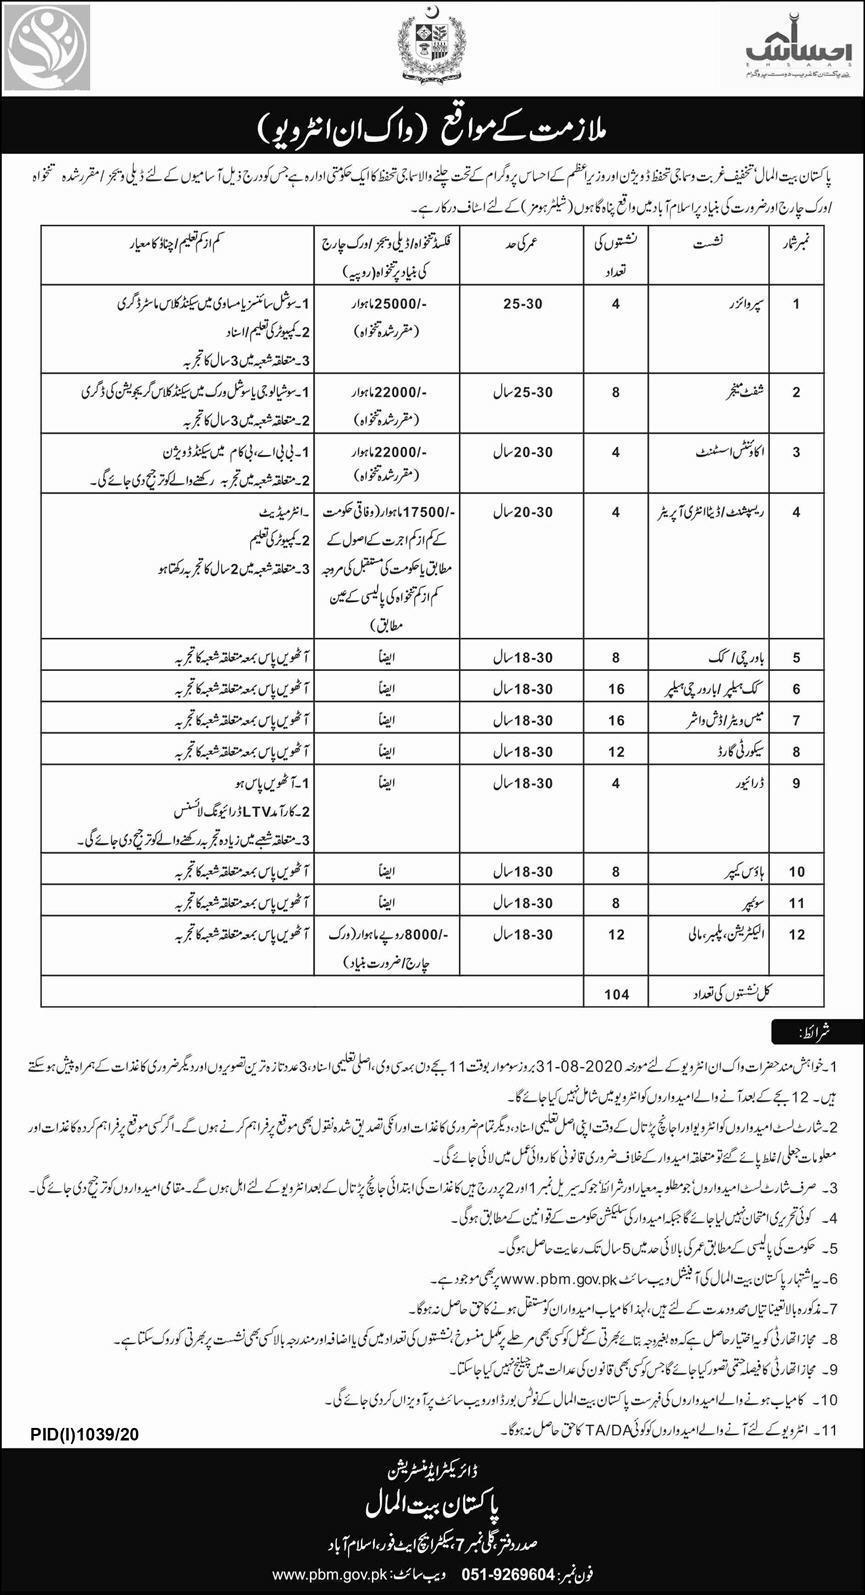 Walk-In-Interview Pakistan Bait ul Mal Jobs 2020 Ehsaas Program